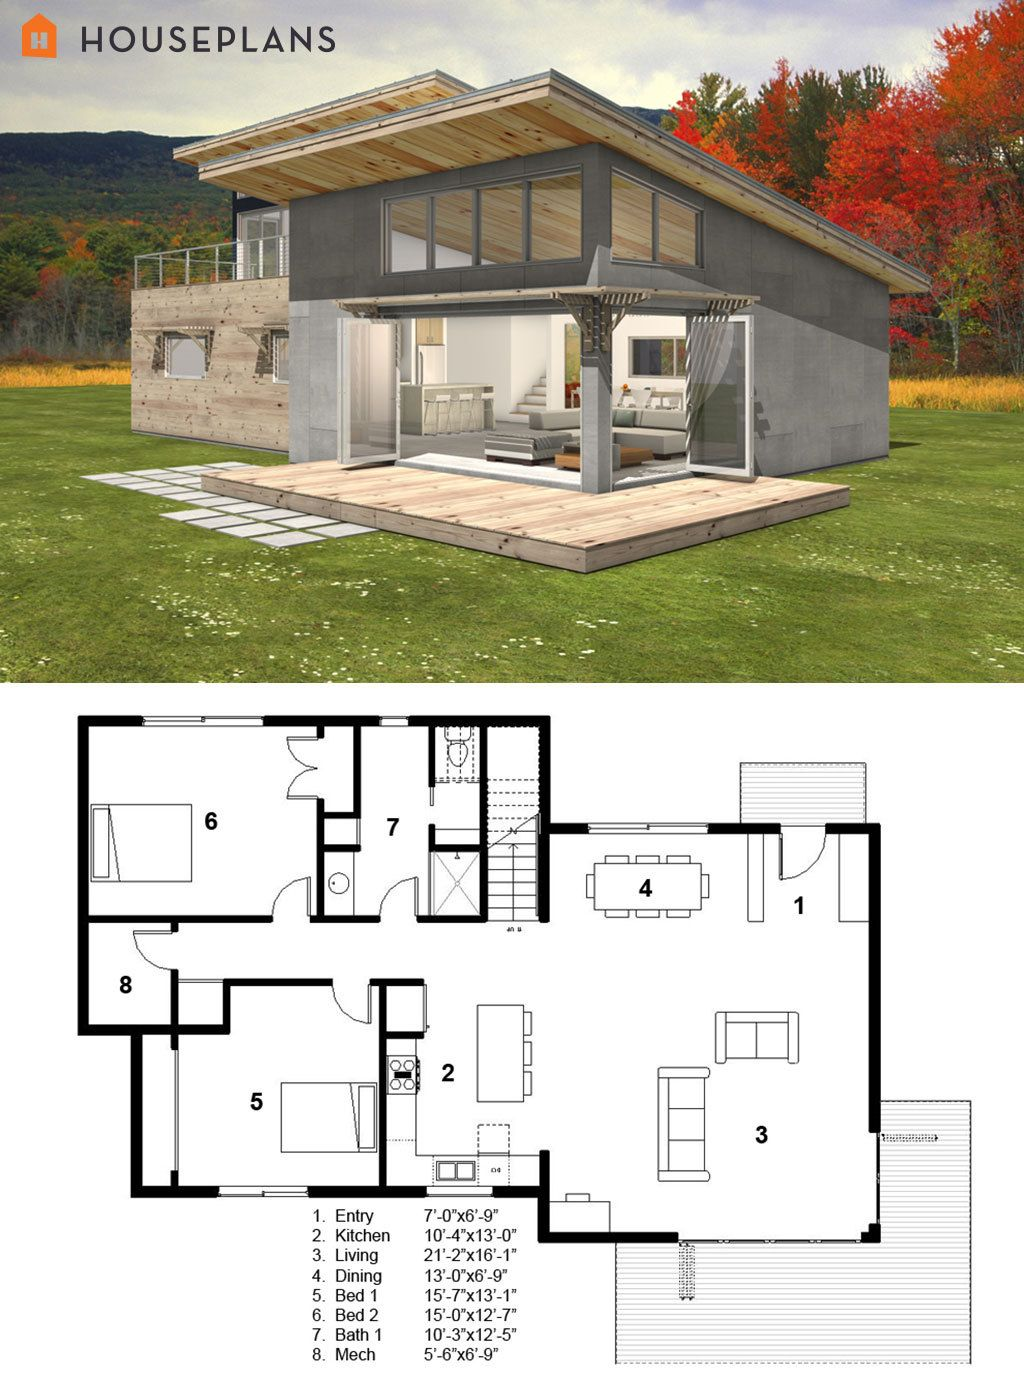 Modern Style House Plan 3 Beds 2 Baths 2115 Sq Ft Plan 497 31 Modern Style House Plans Small Modern Cabin Cabin House Plans